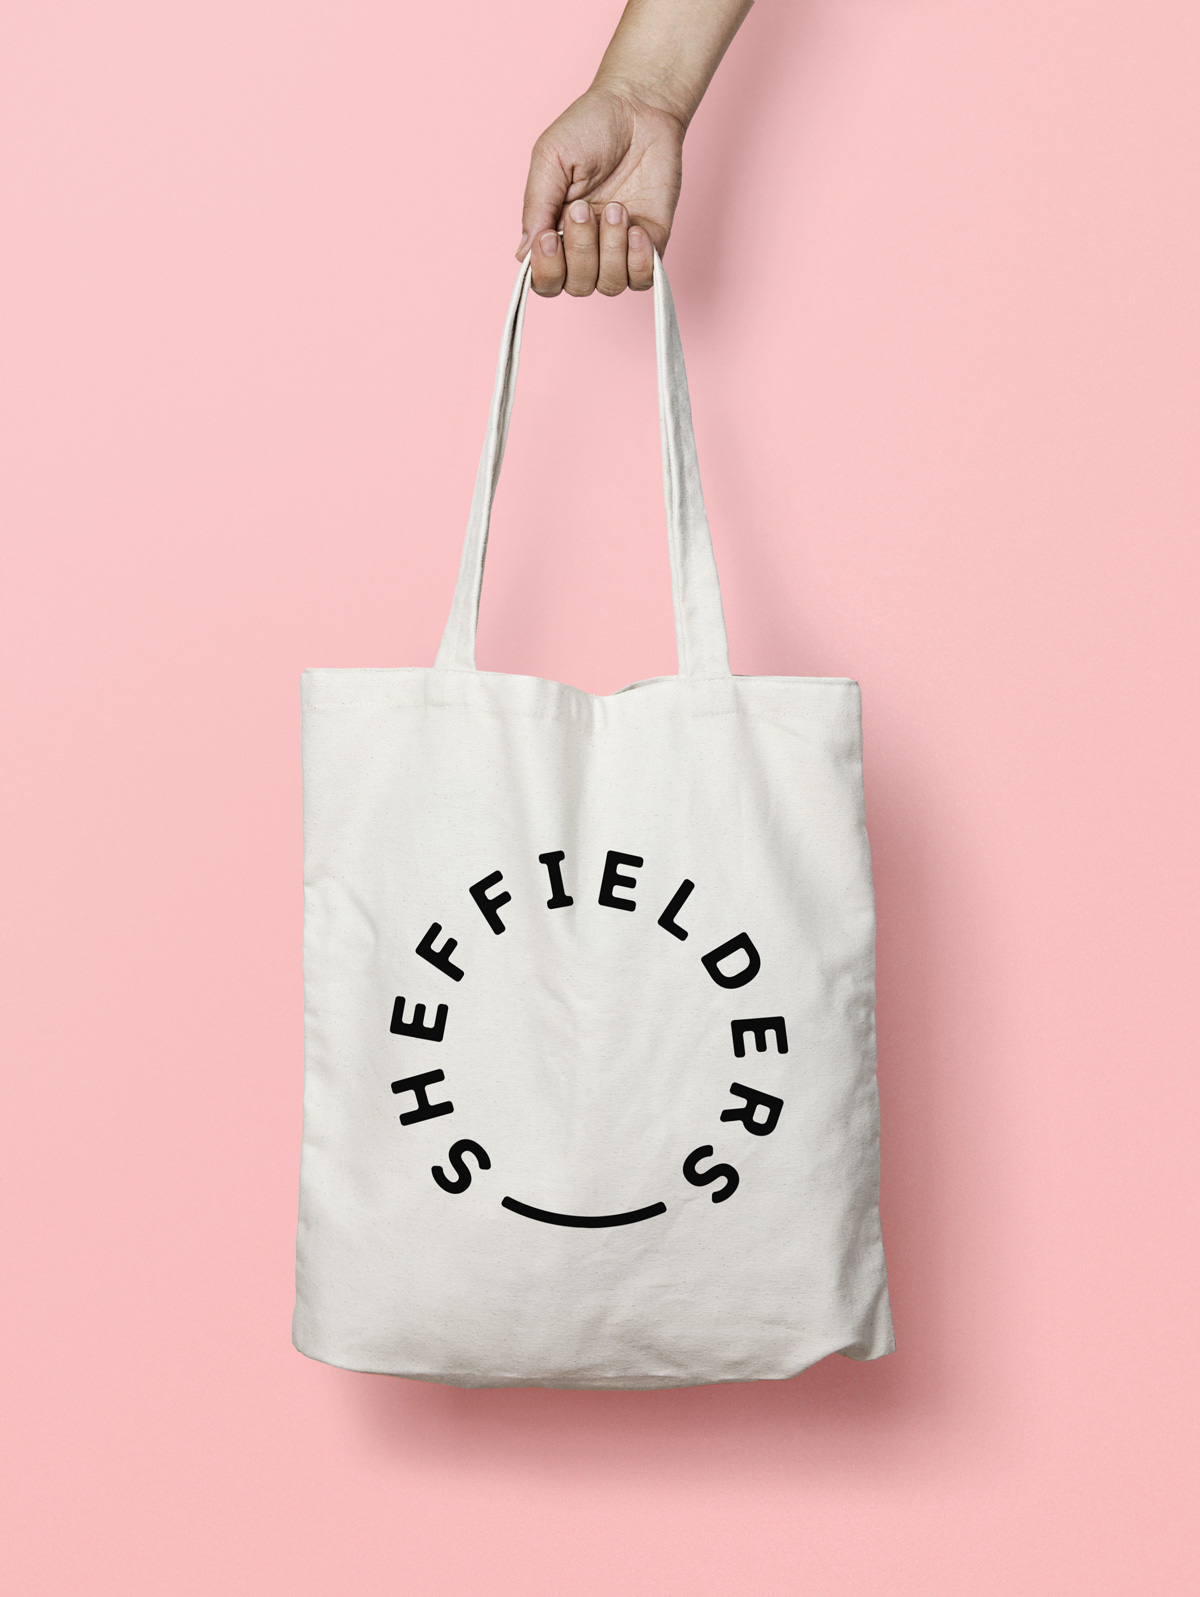 Sheffielders-Tote-Bag.jpg